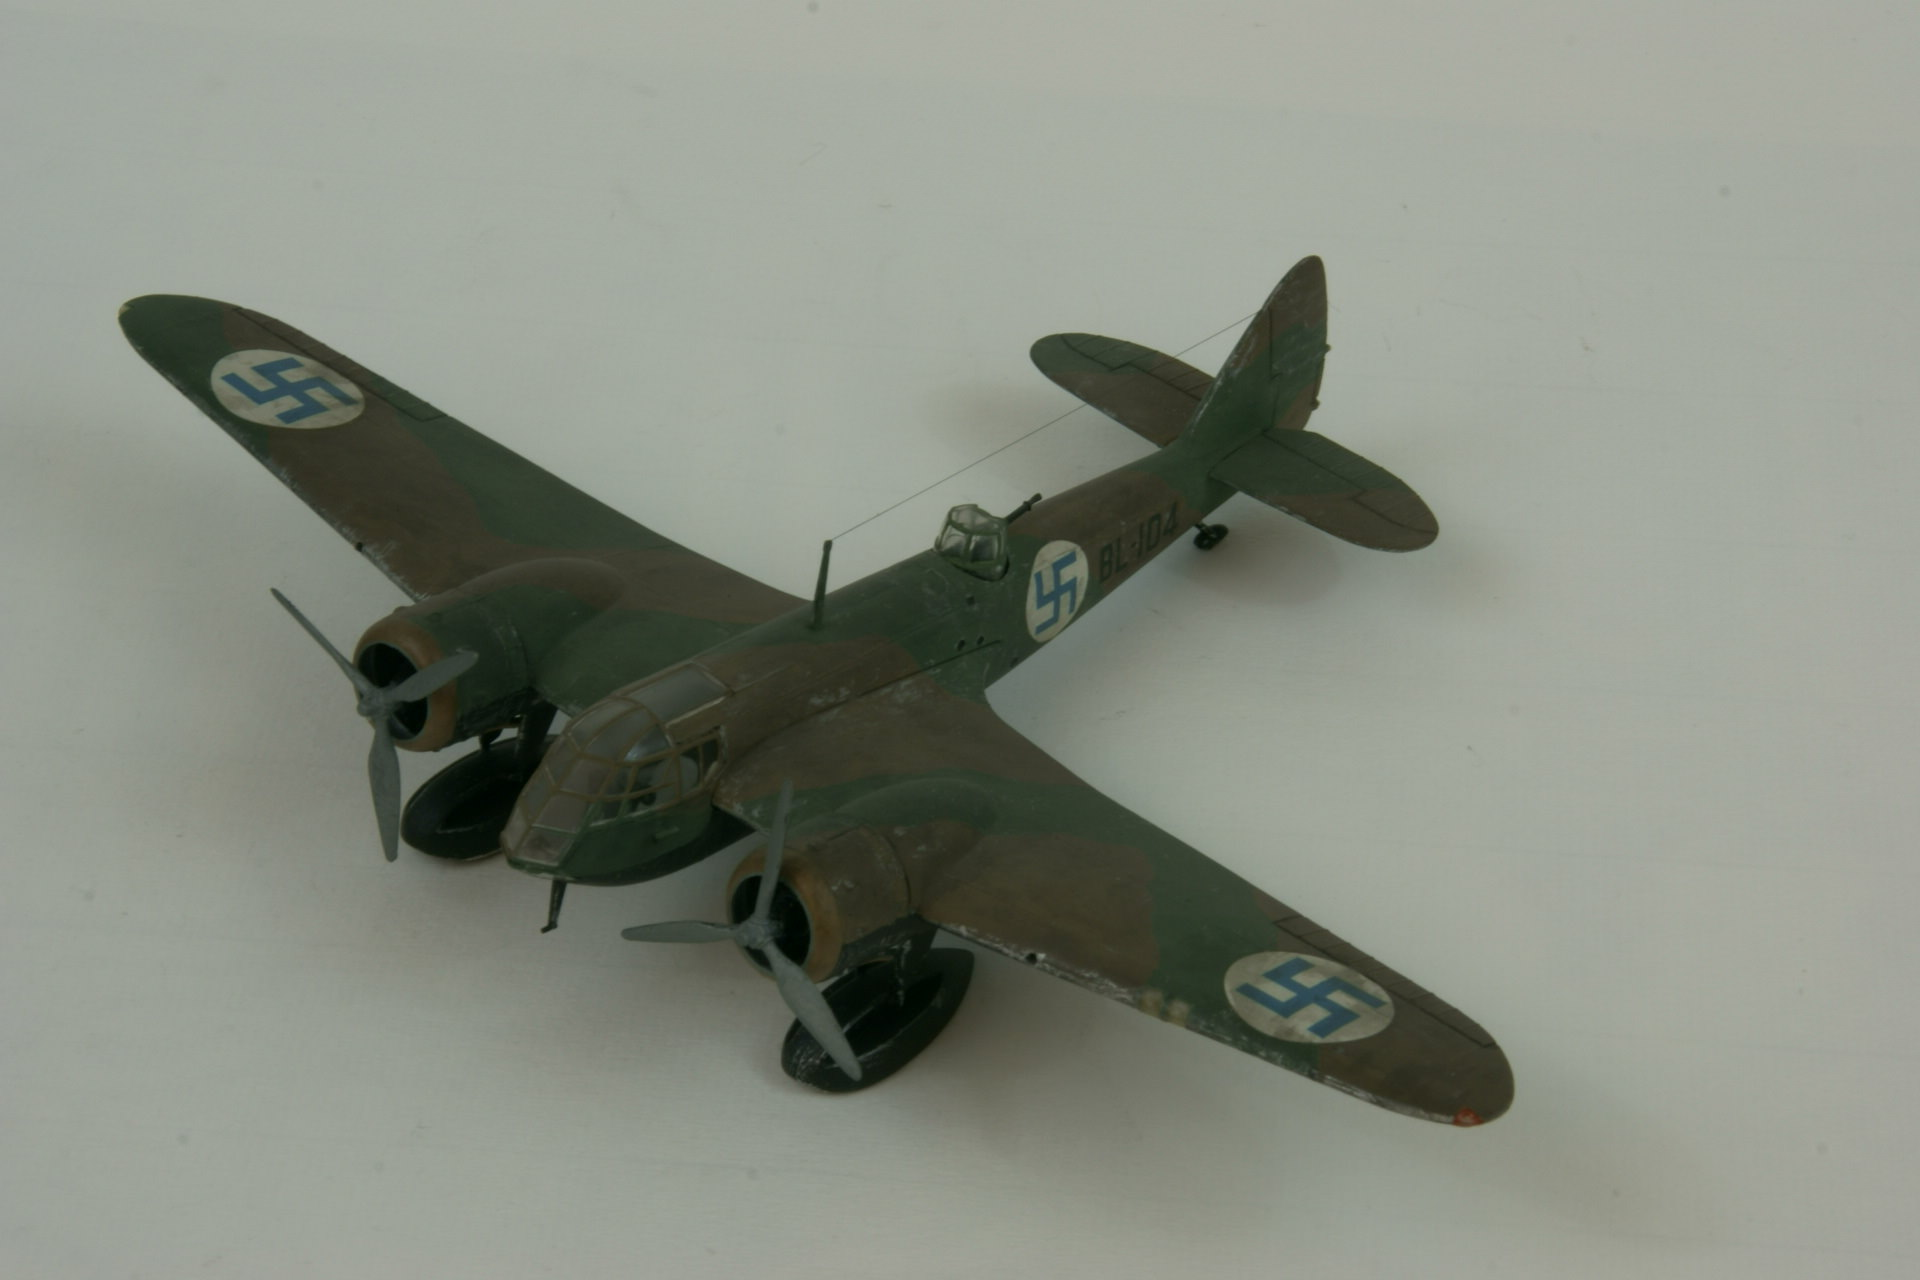 Bristol blenheim i series i 1